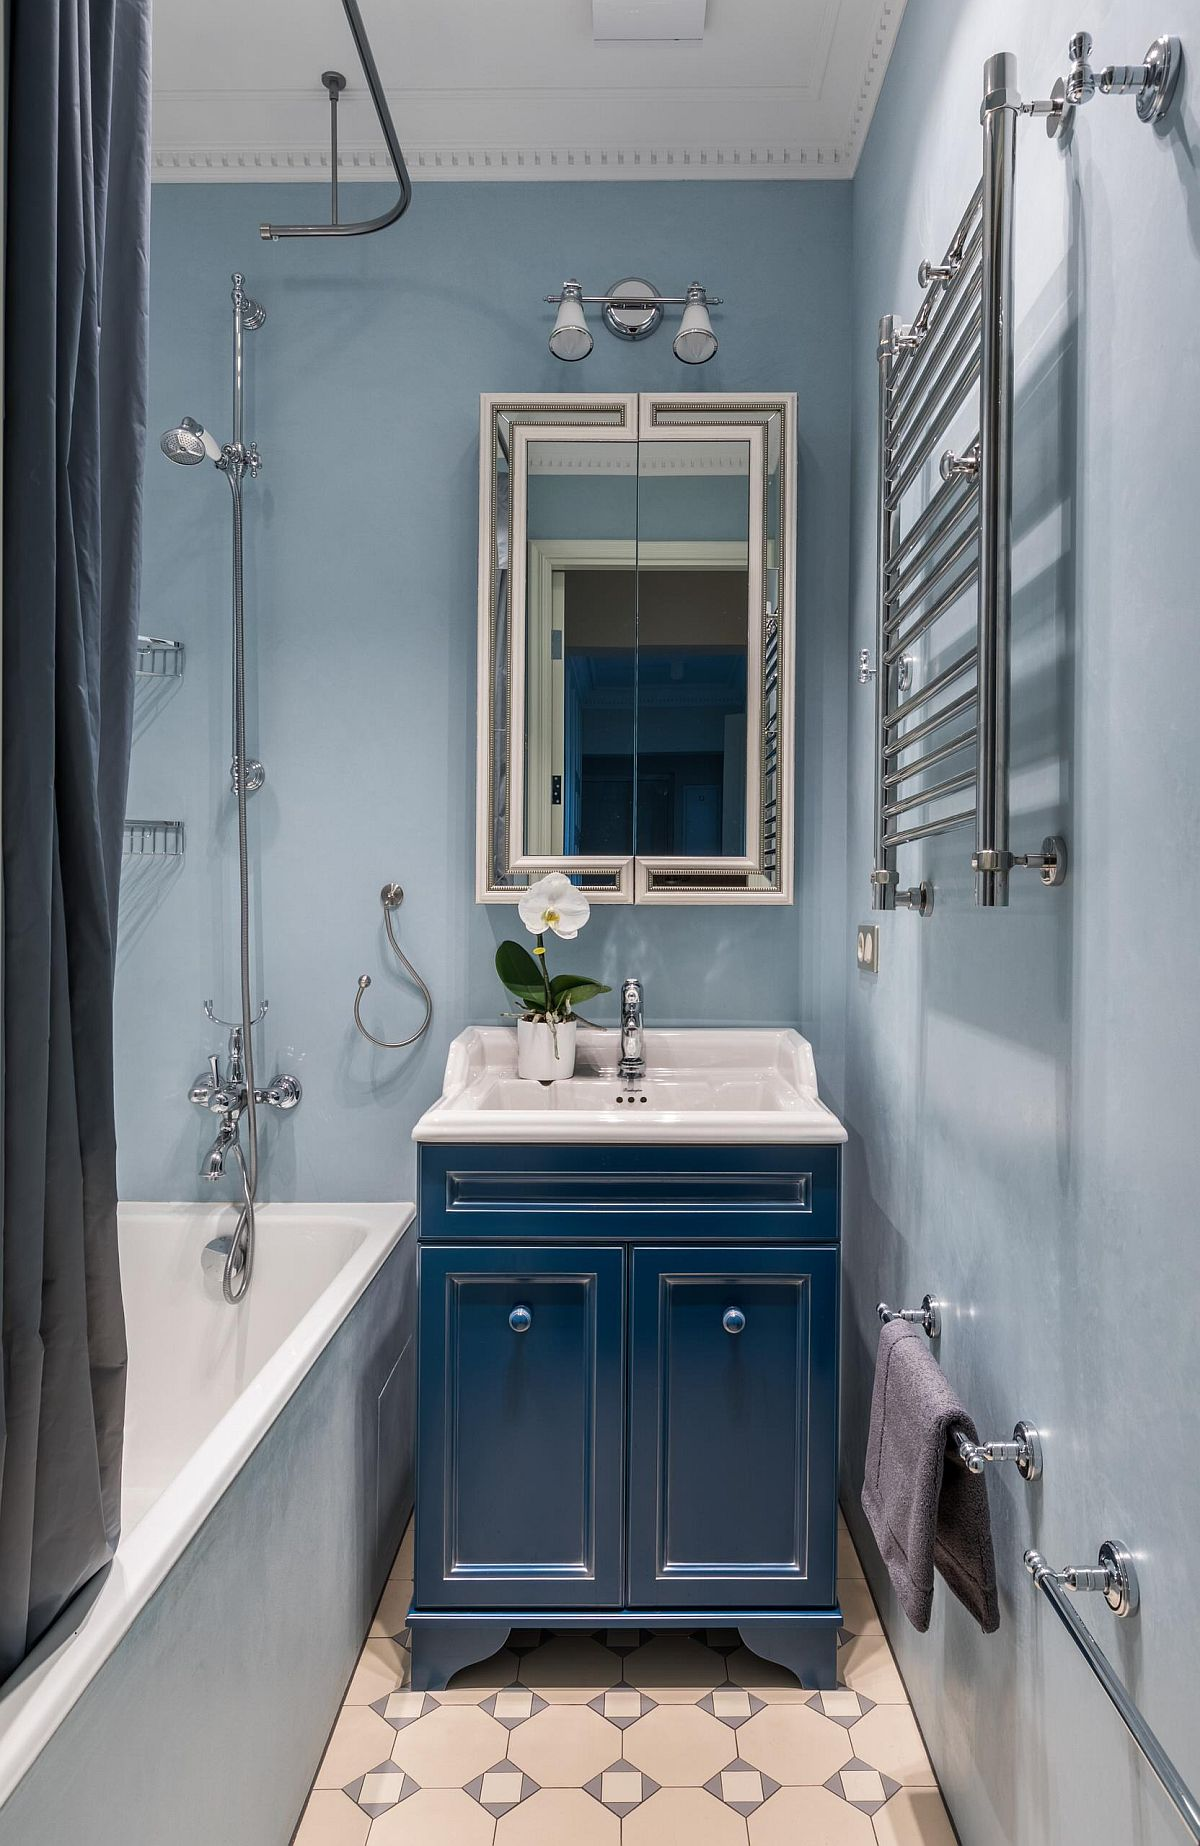 Small bathroom in light blue and white of Moscow home with a dark blue vanity and space-savvy design